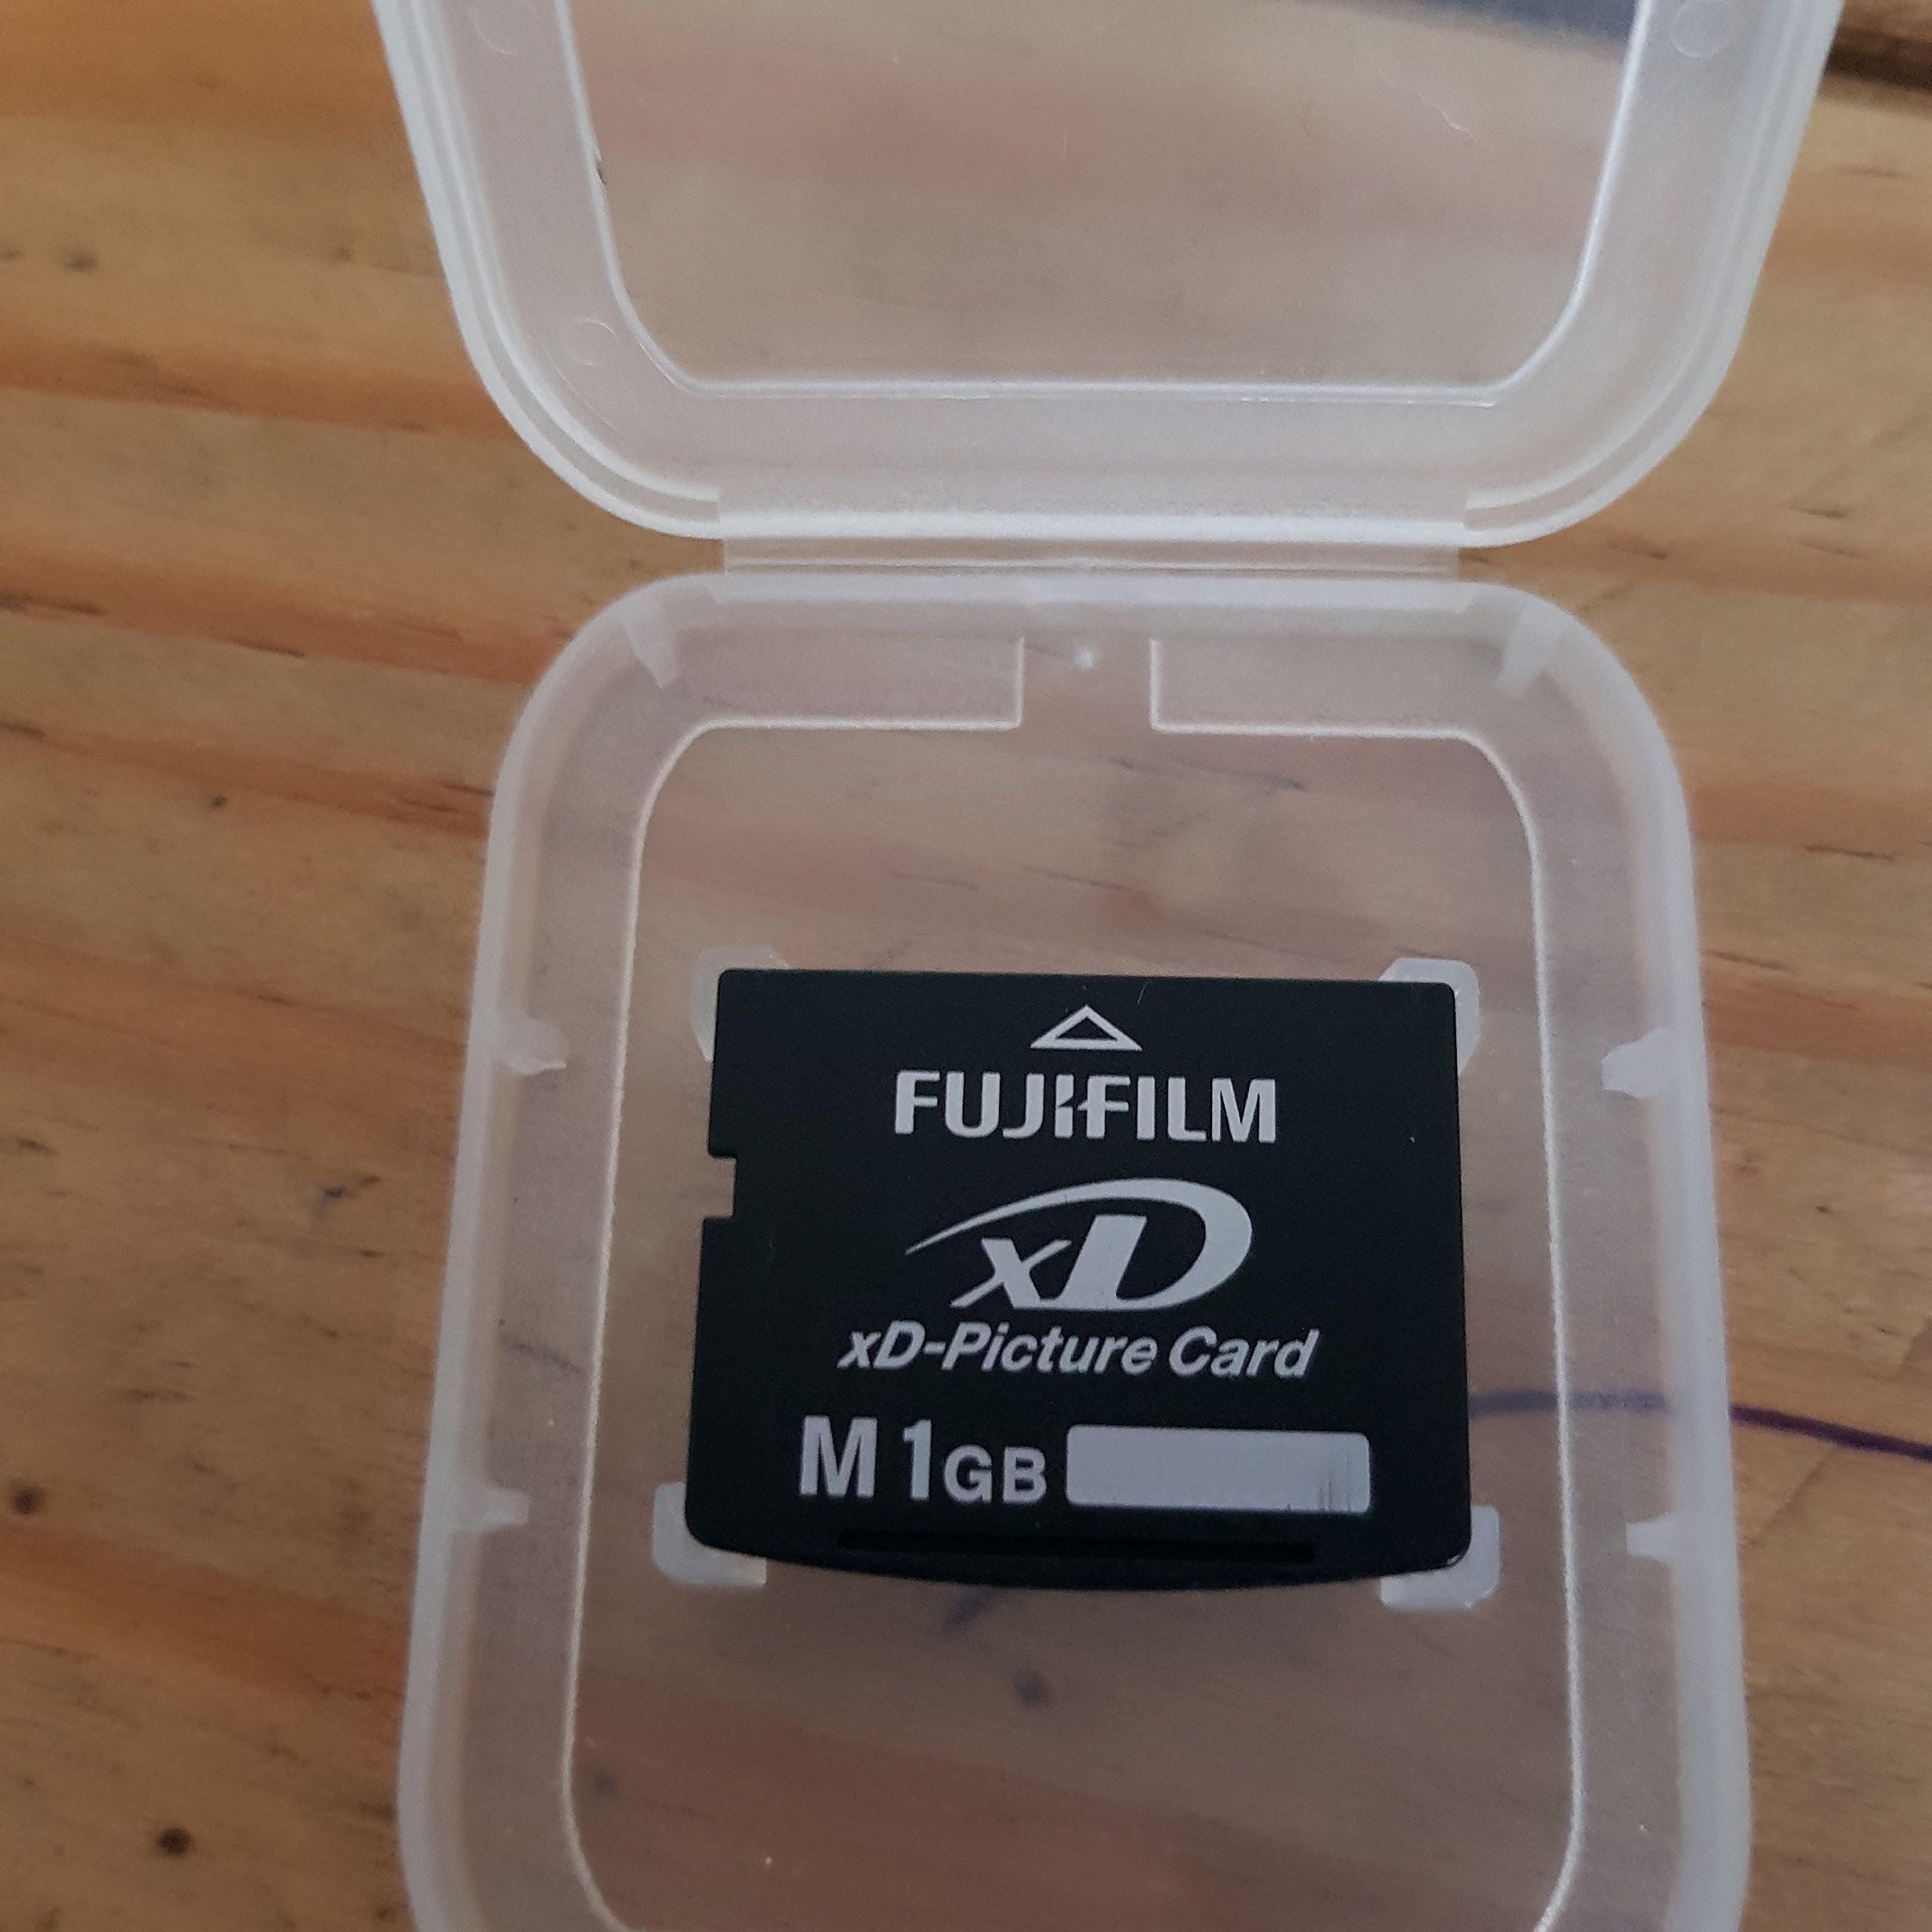 Amazon.com: 1 GB Fujifilm XD Memory Card Type M FujiFilm 1GB ...